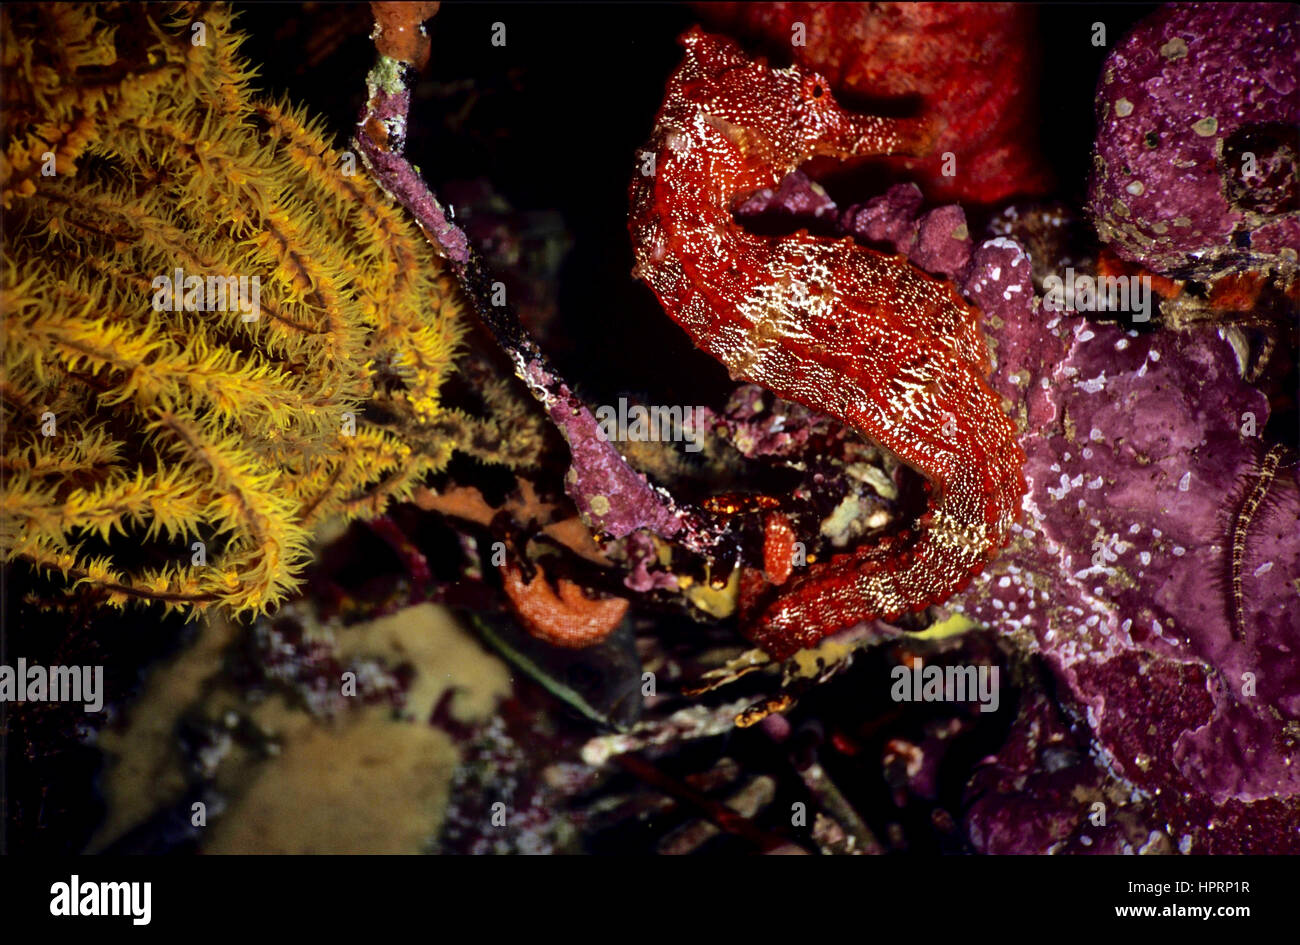 A Pacific seahorse (Hippocampus ingens) sheltering in a colourful coral reef. Listed as vulnerable in the IUCN Red - Stock Image